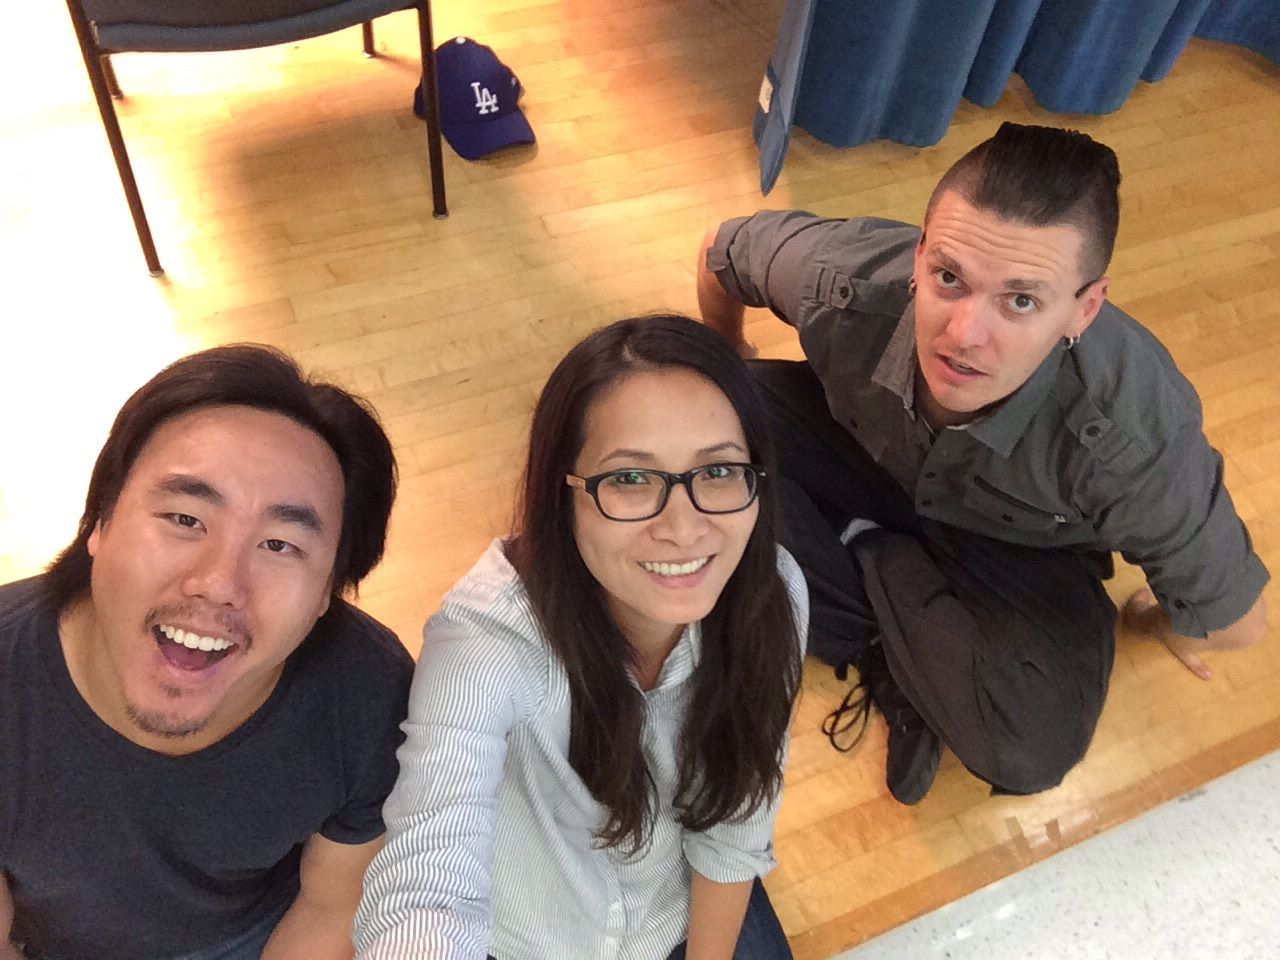 L - R: Adam, Huong, and Jon. Not pictured: selfie stick.